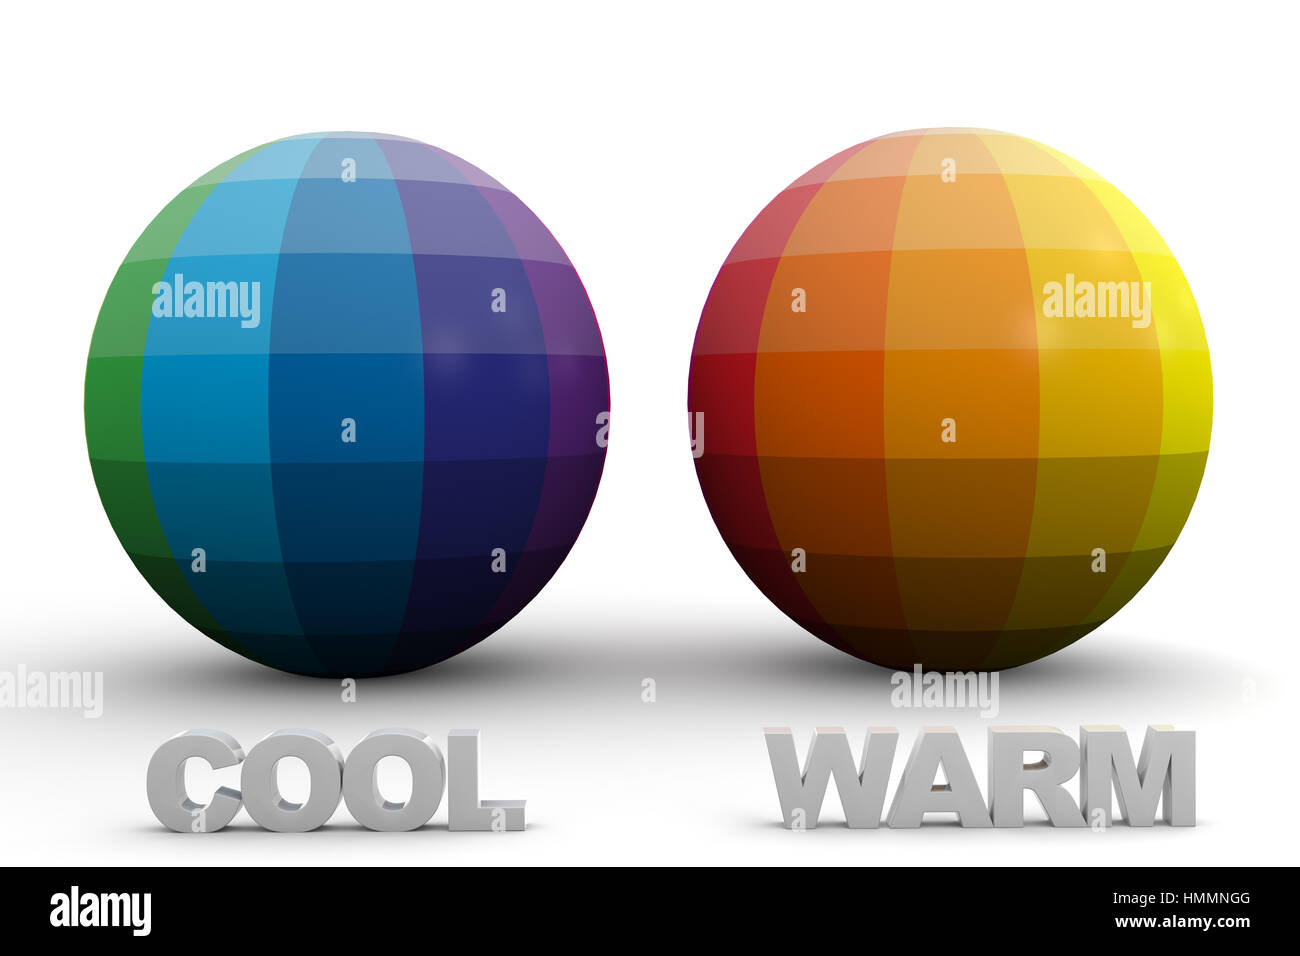 Didactic Color Scheme: Cool & Warm Colors in 3D Sphere - Stock Image